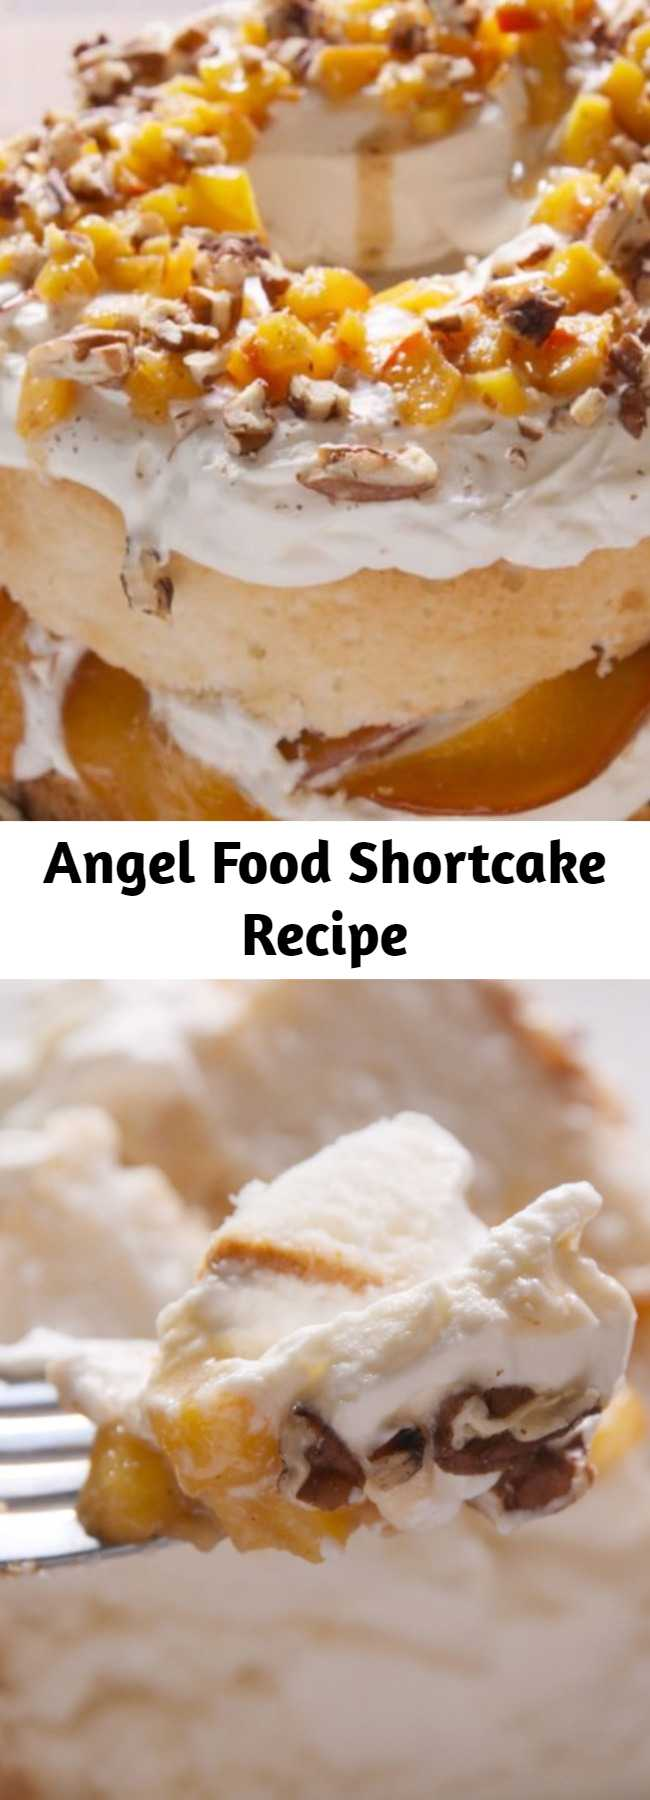 Angel Food Shortcake Recipe - You'll be feeling heavenly with this Angel Food Shortcake recipe. This peaches and cream angel food cake is truly divine 😇.